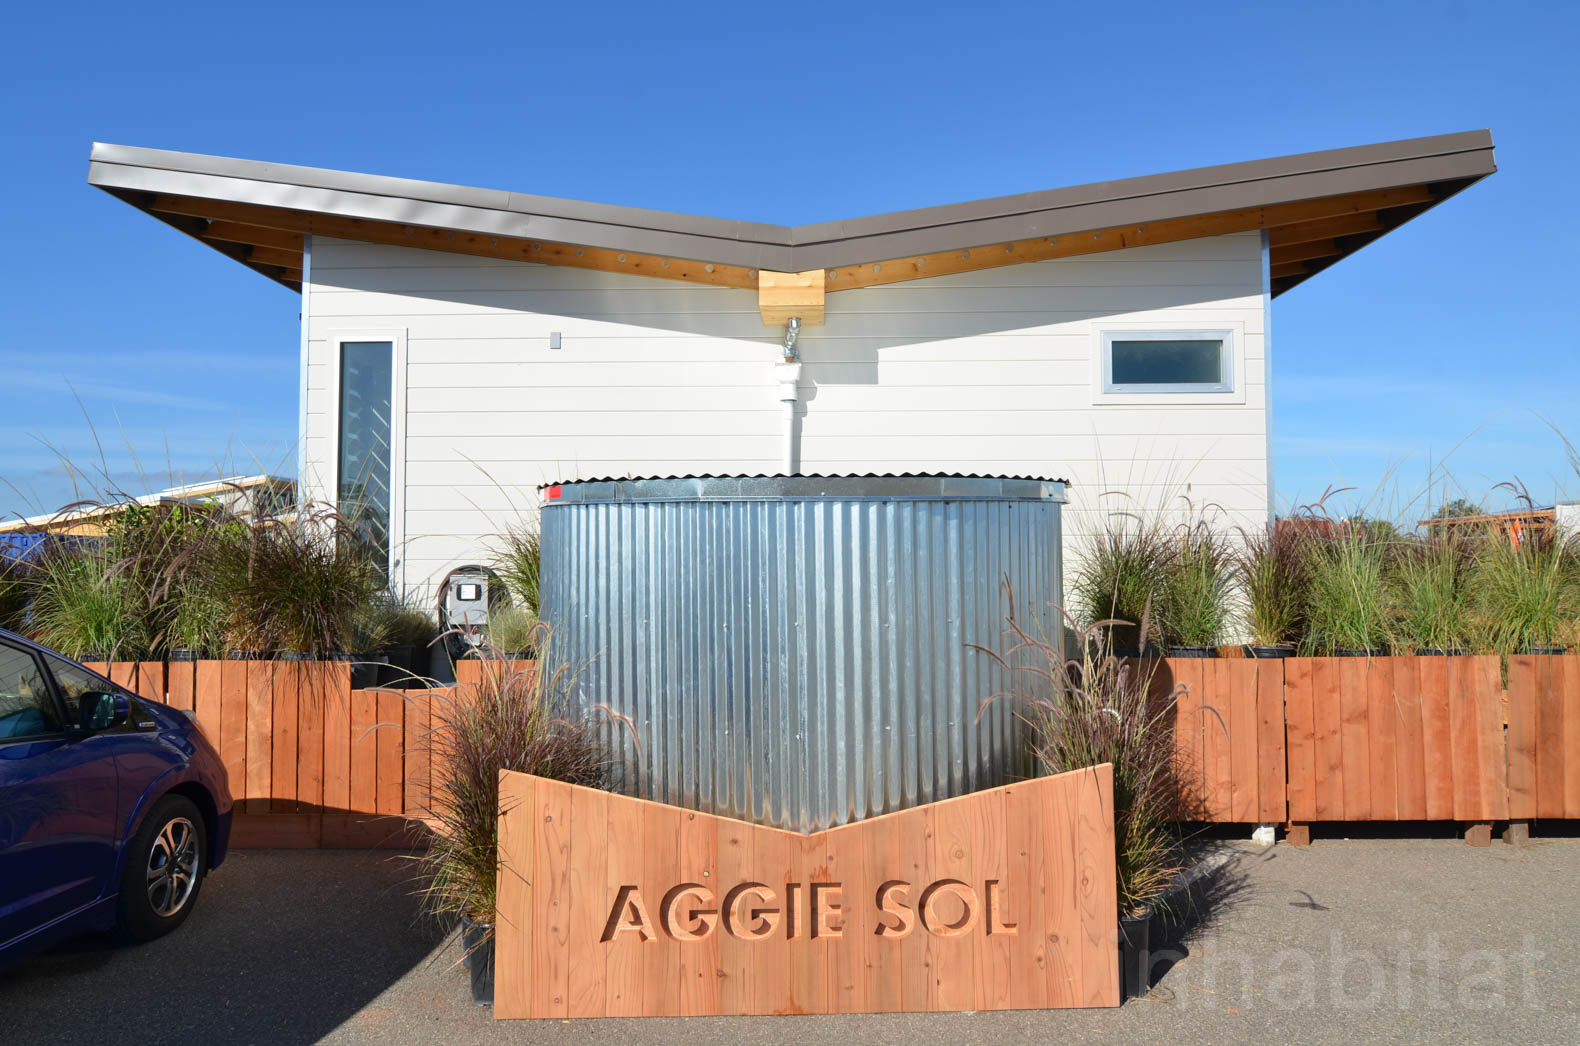 Revolutionary Aggie Sol home is cooled by rooftop sprinklers